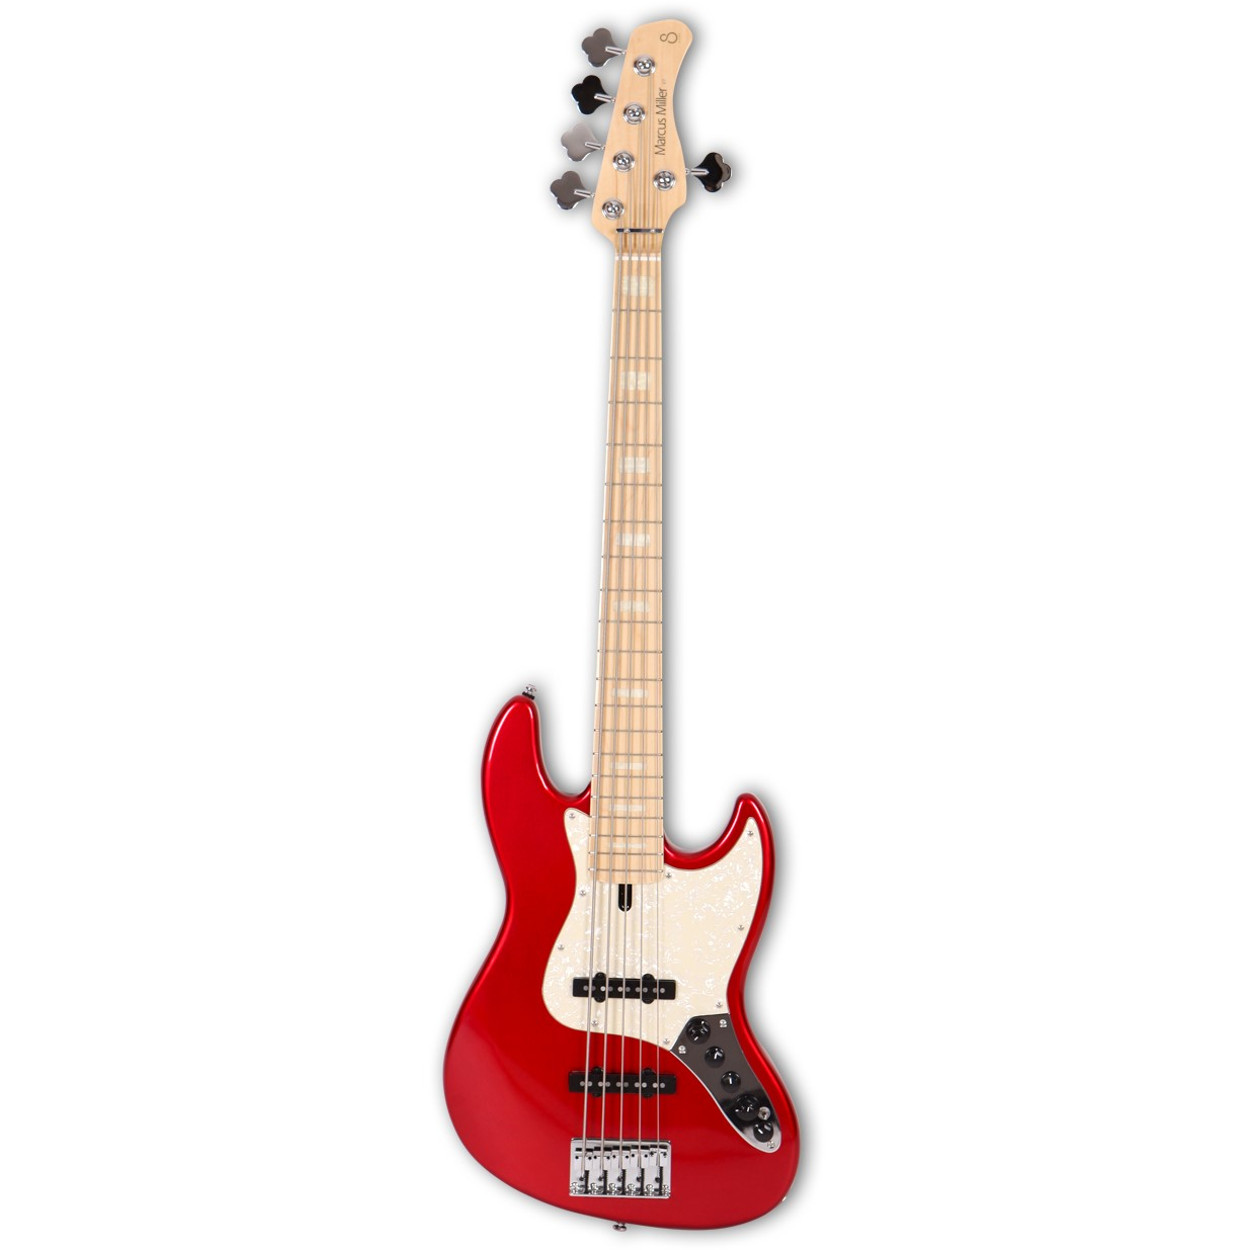 Sire Marcus Miller V7 5ST Swamp Ash Bright Metallic Red MN